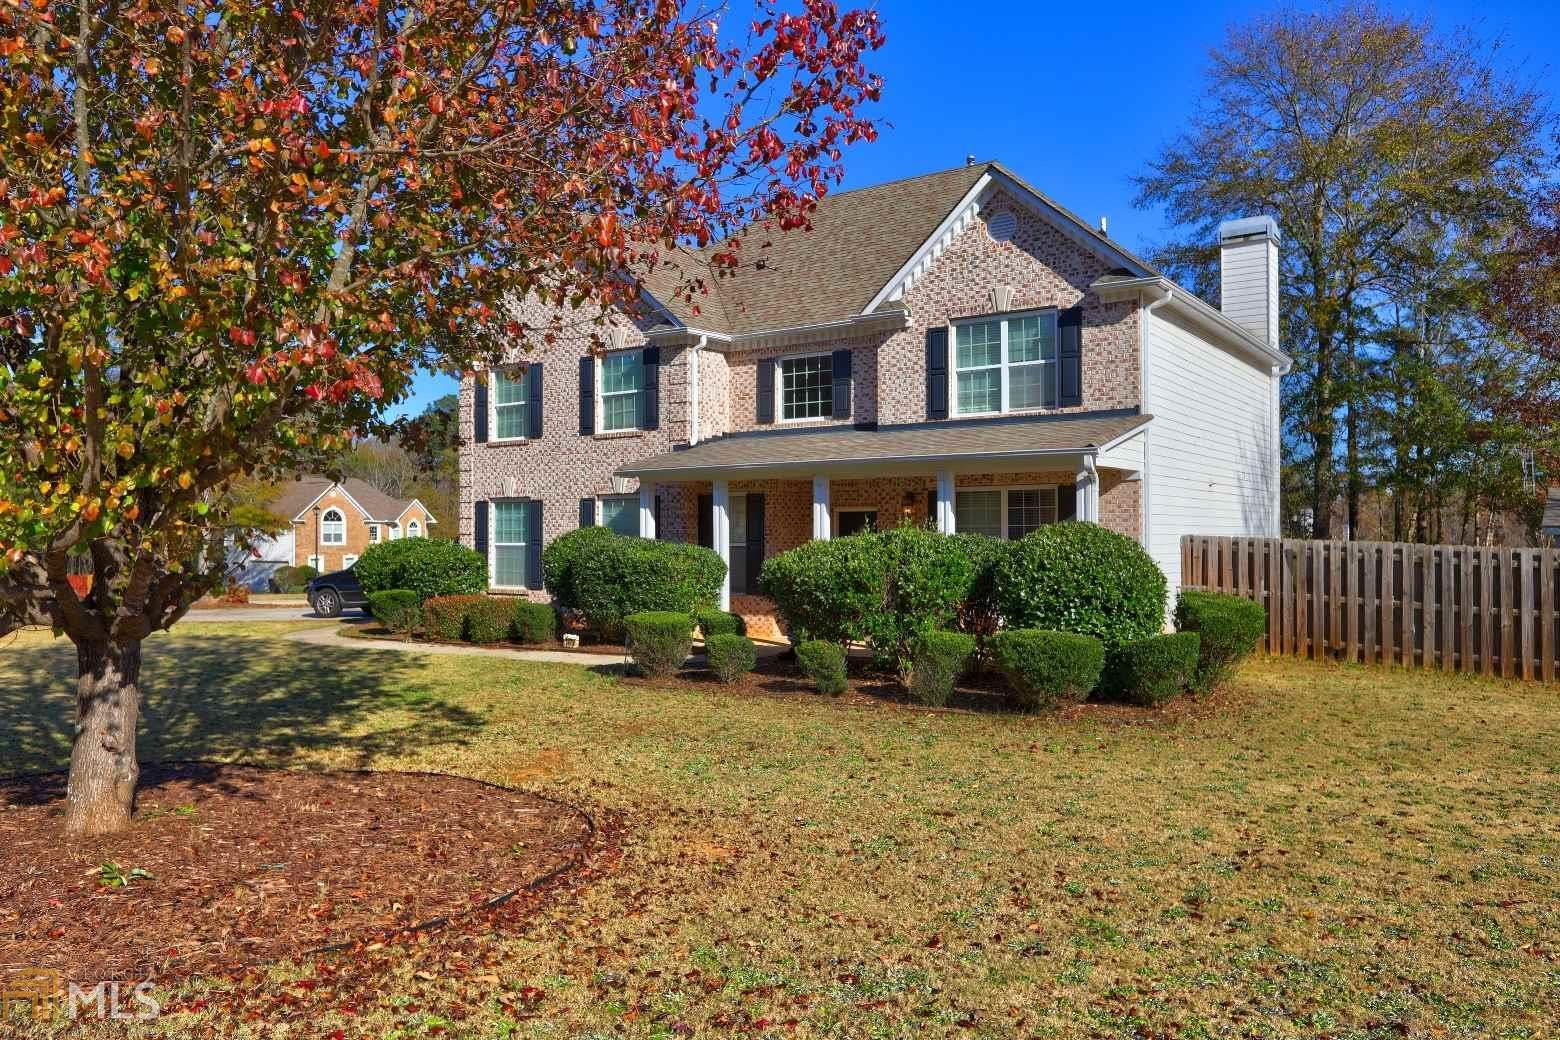 1479 Tether Ln, McDonough, GA 30253 - MLS#: 8905654